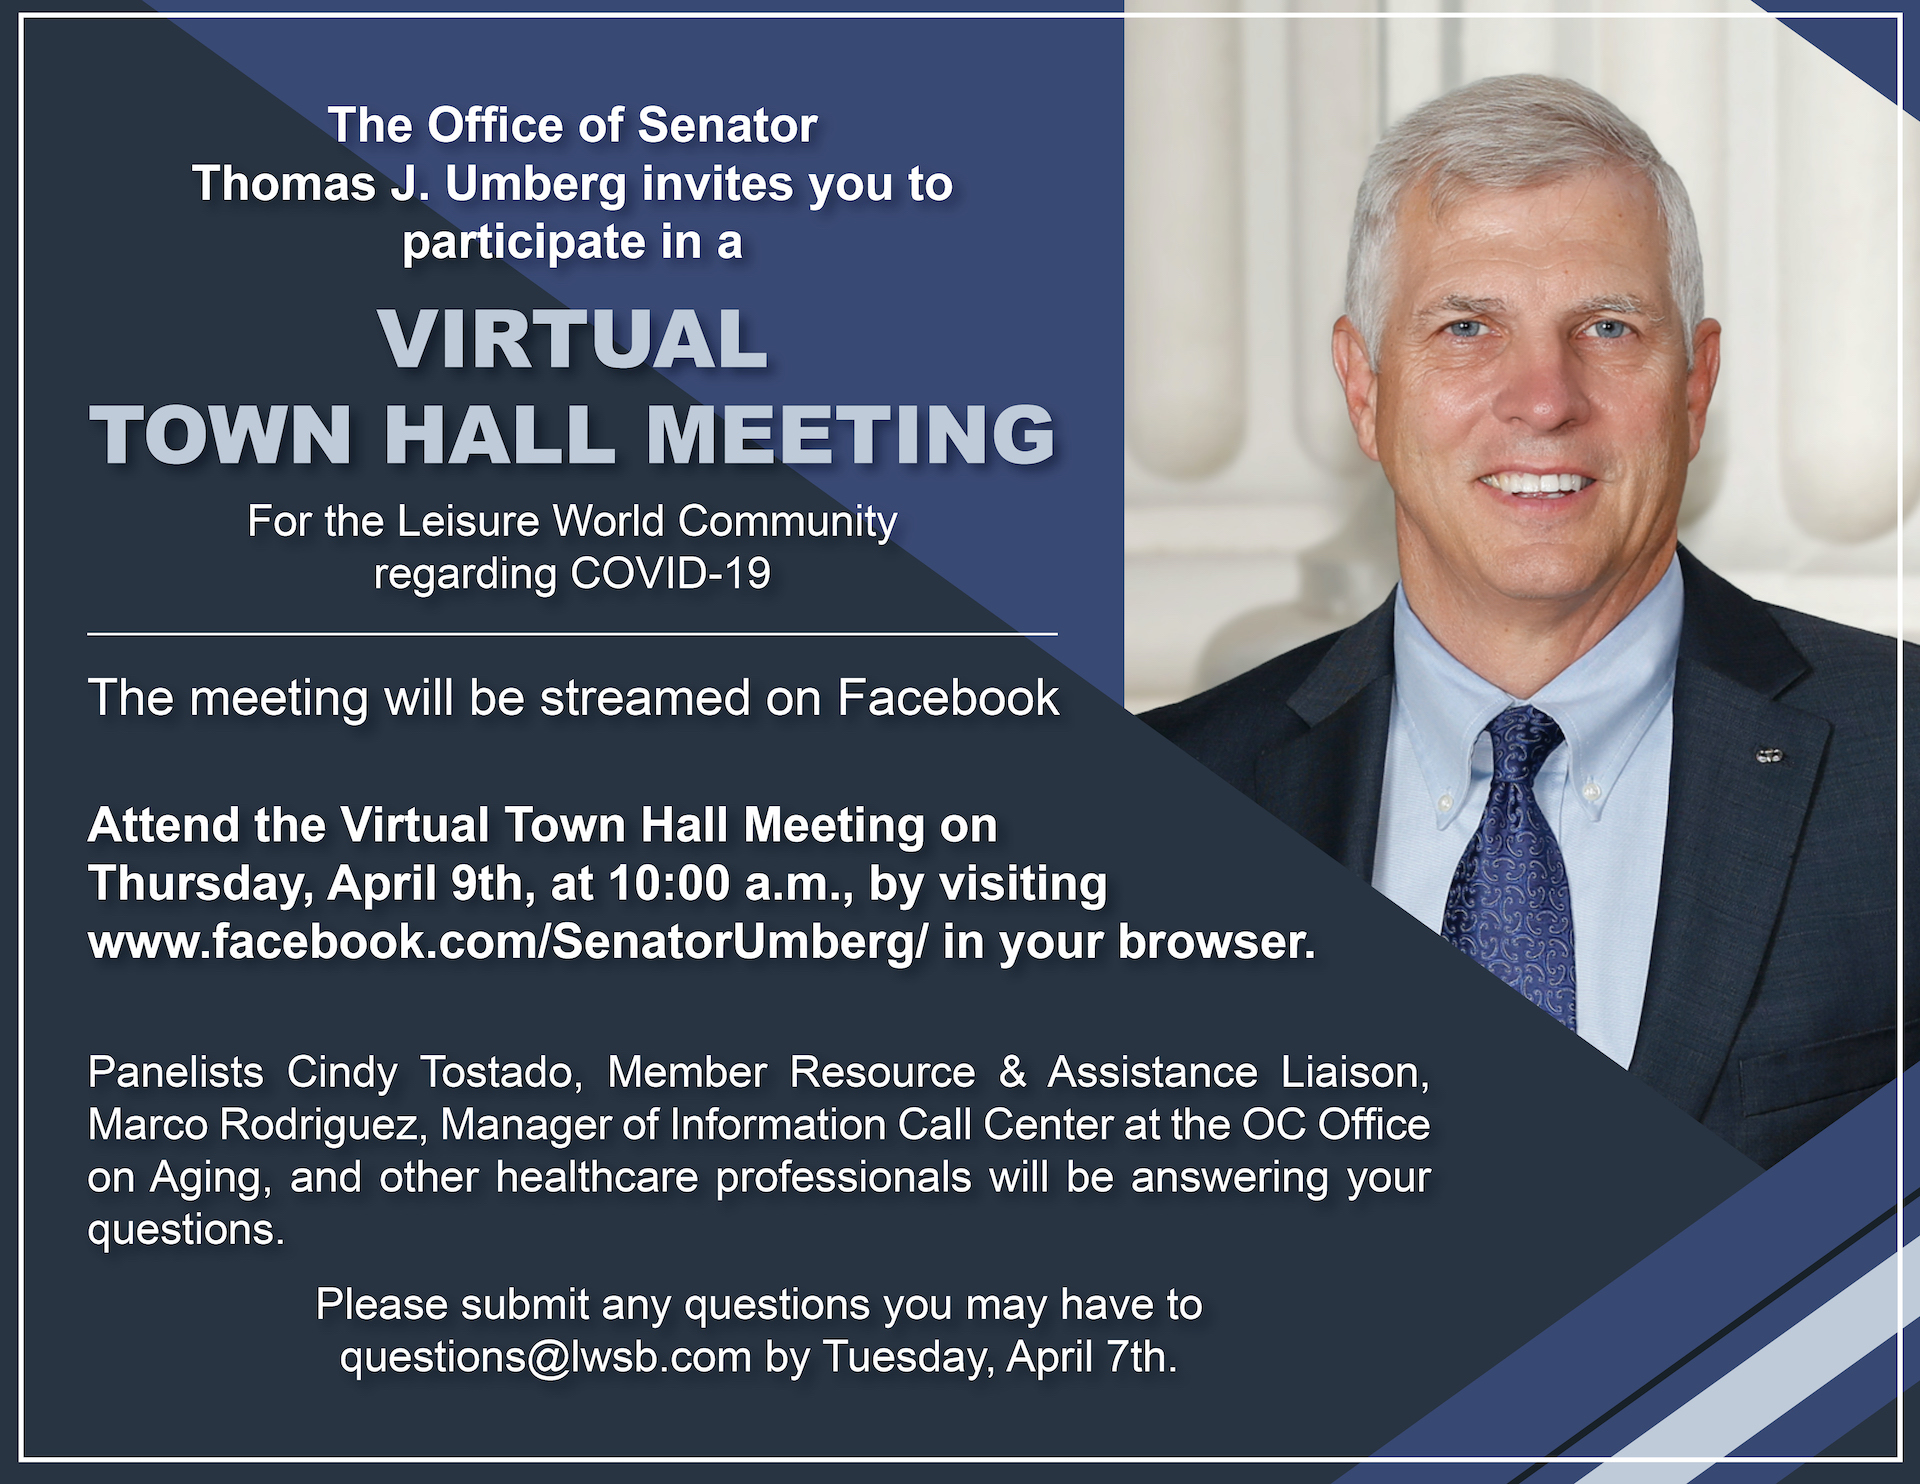 0407 Town Hall meeting flyer